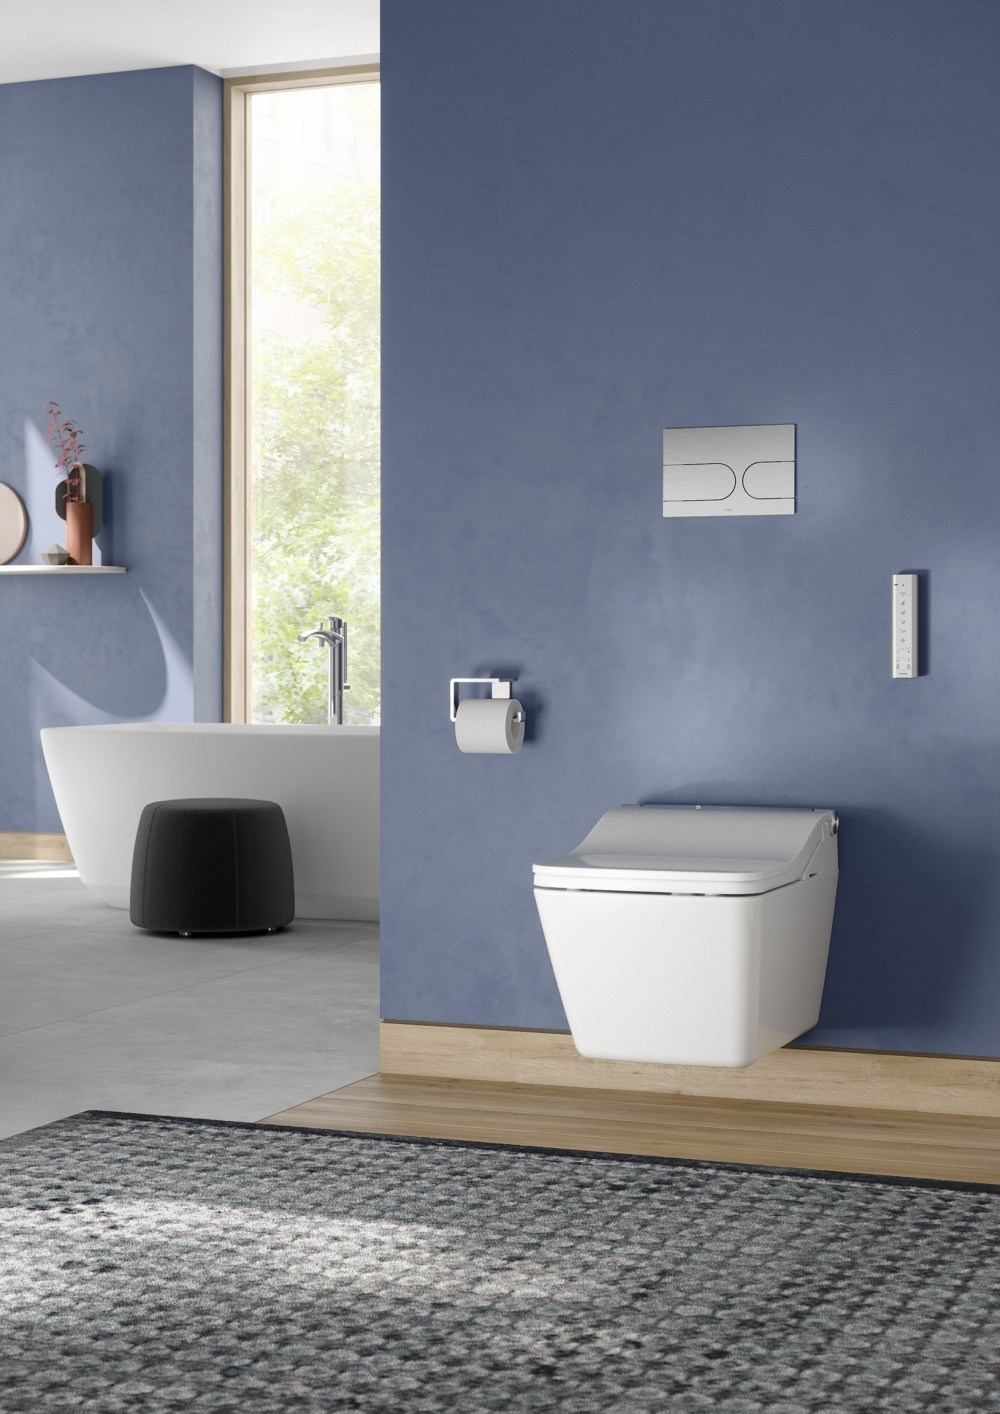 wallhung toilet sp combi washlet toto sw